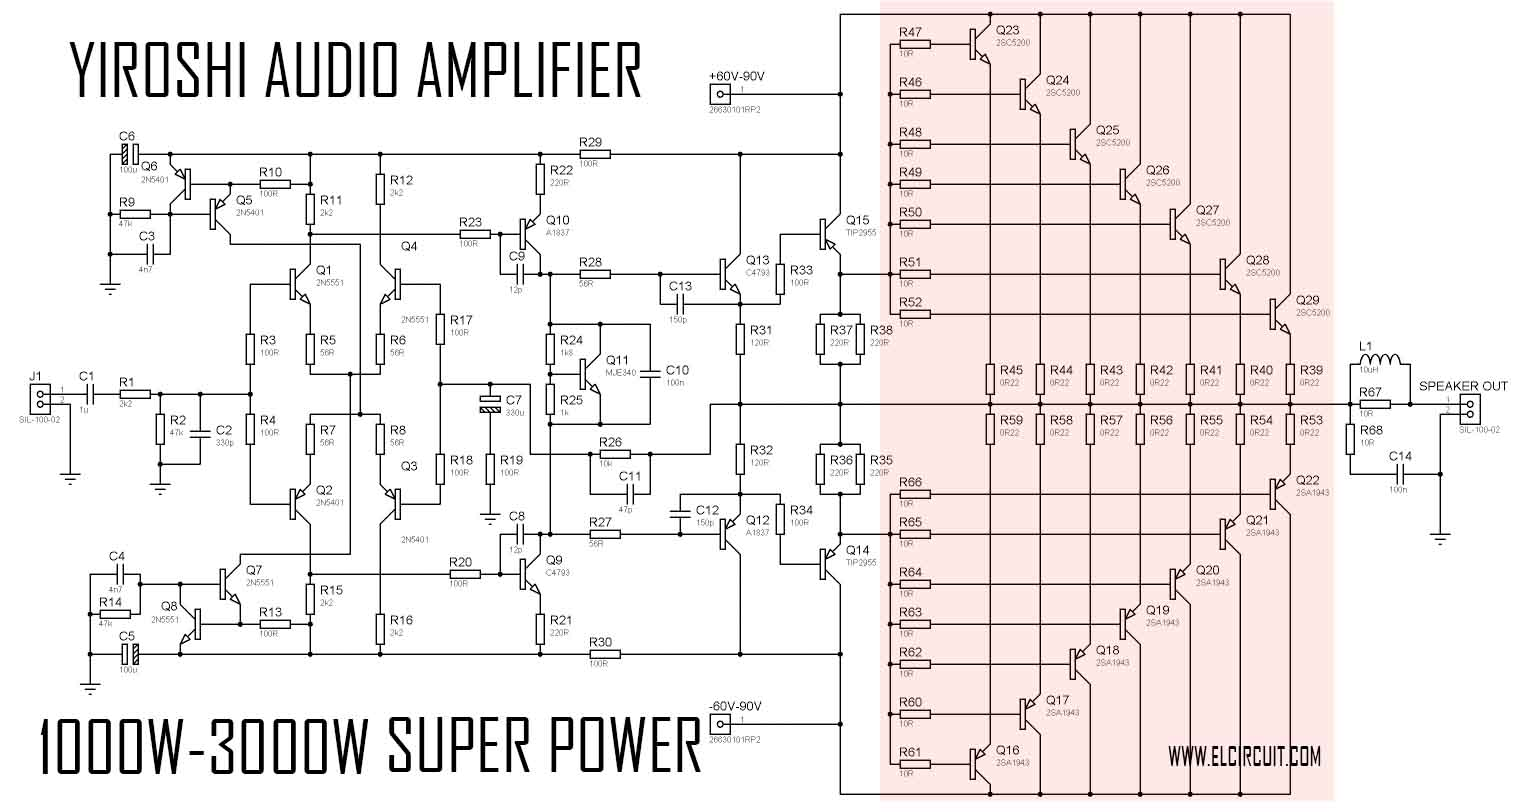 hight resolution of super power amplifier yiroshi audio 1000 watt